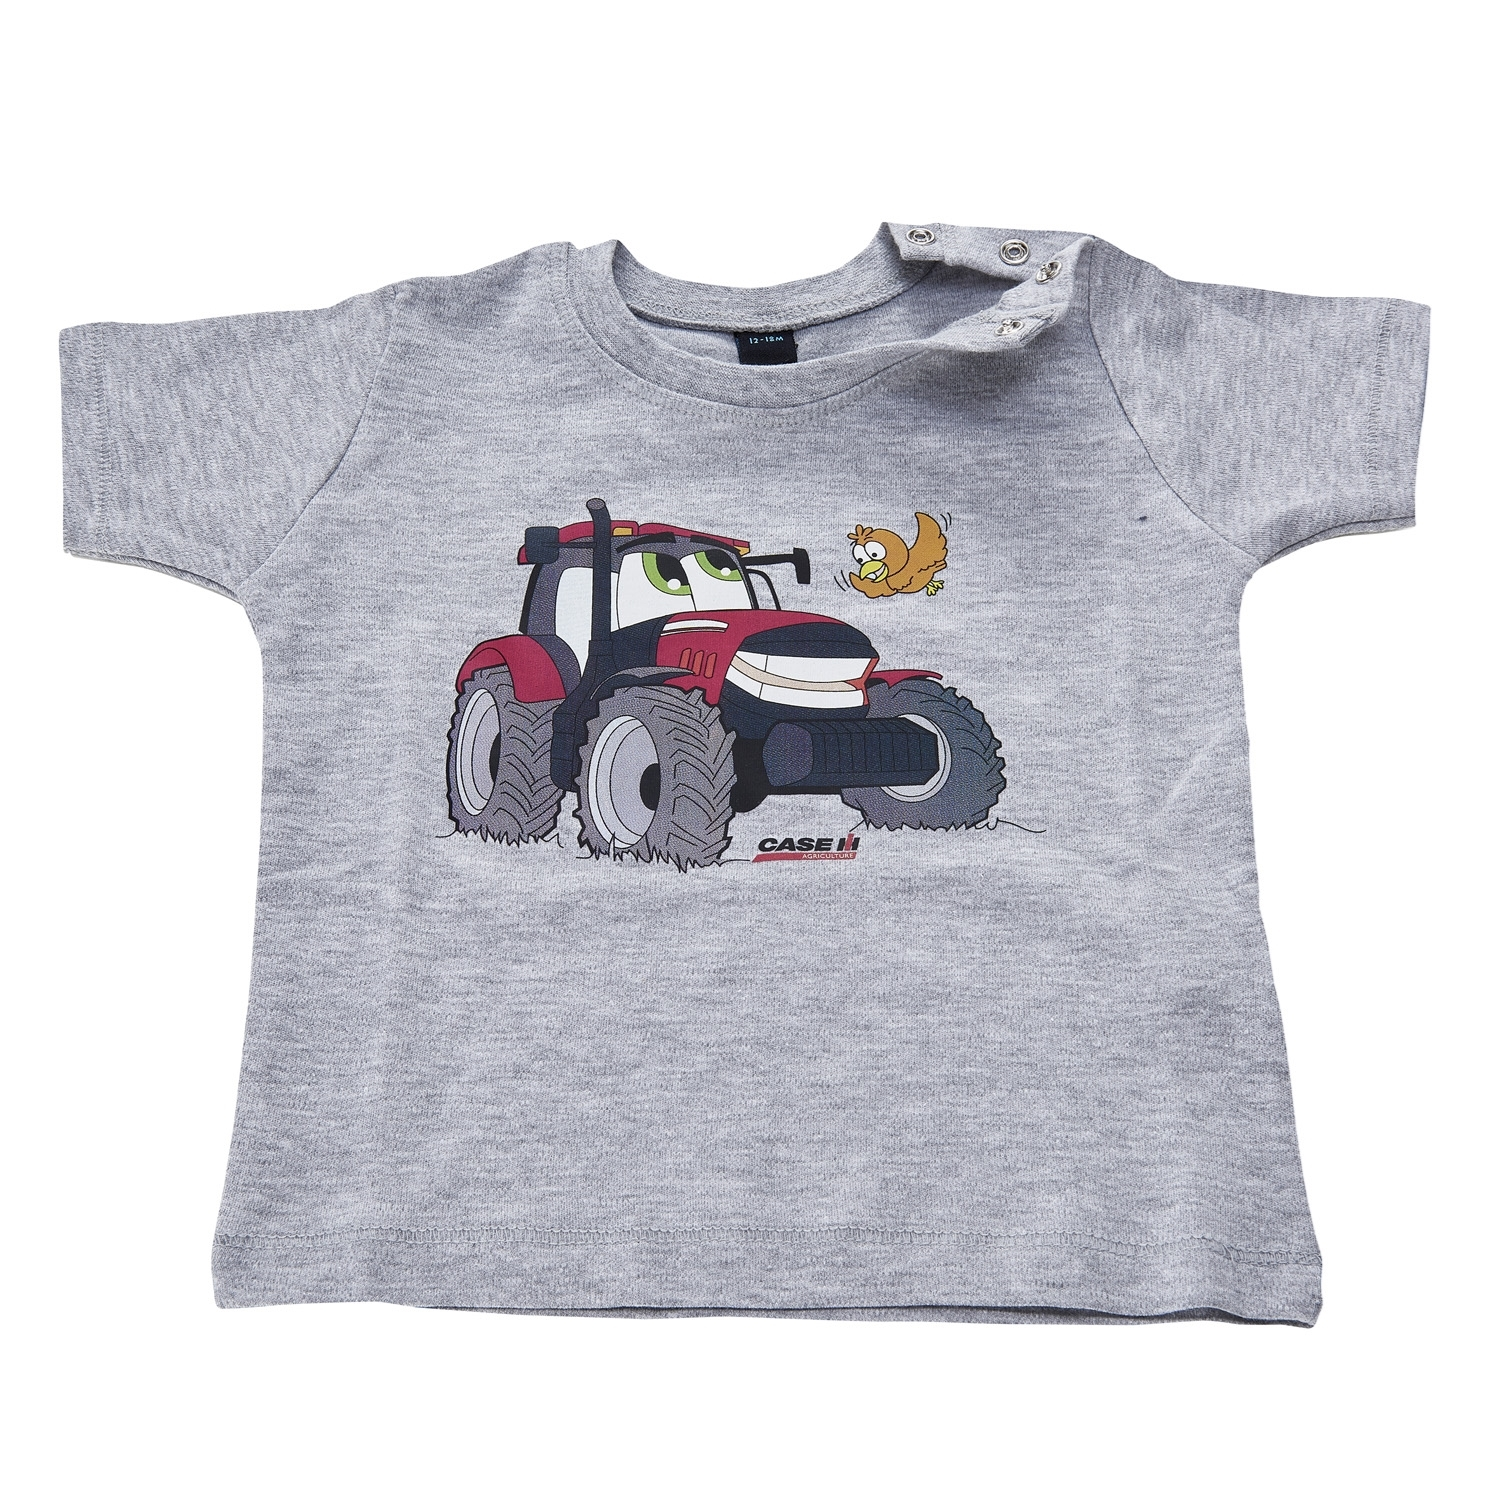 Tractor Shirts And Hats : Case ih baby s tractor t shirt